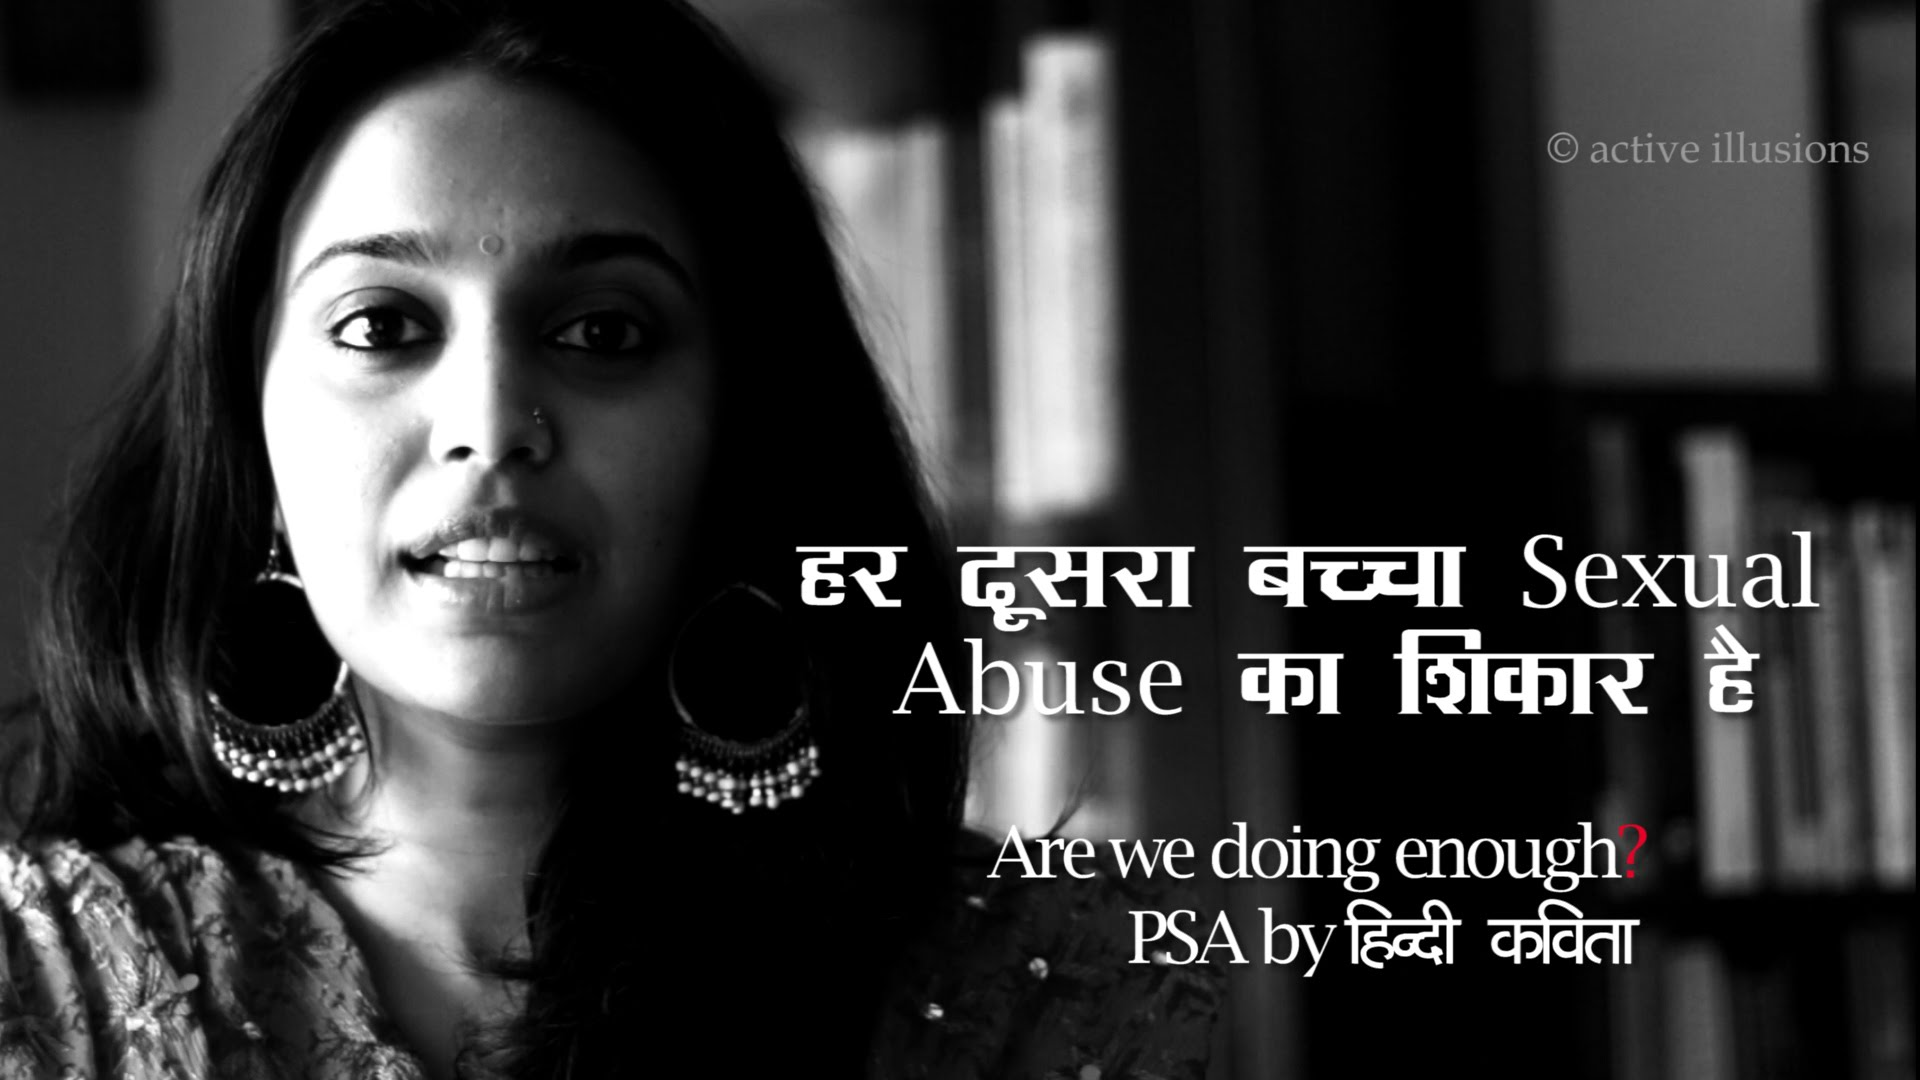 sexual abuse Information about prevalence, perpetrators, and effects of child sexual abuse.